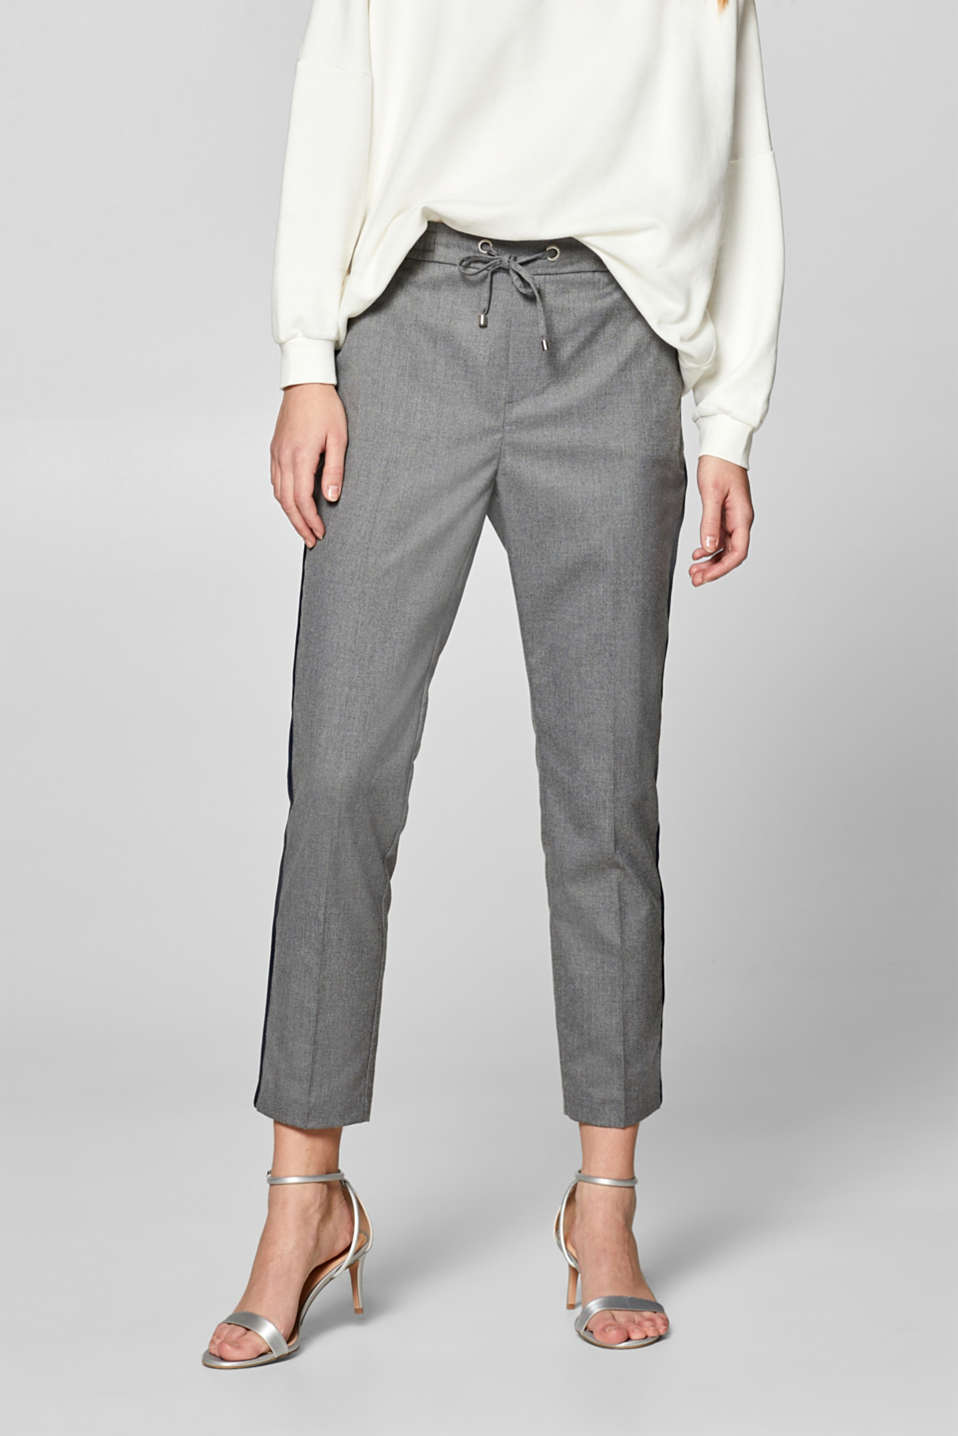 Esprit - GALON mix + match stretch trousers with an elasticated waistband